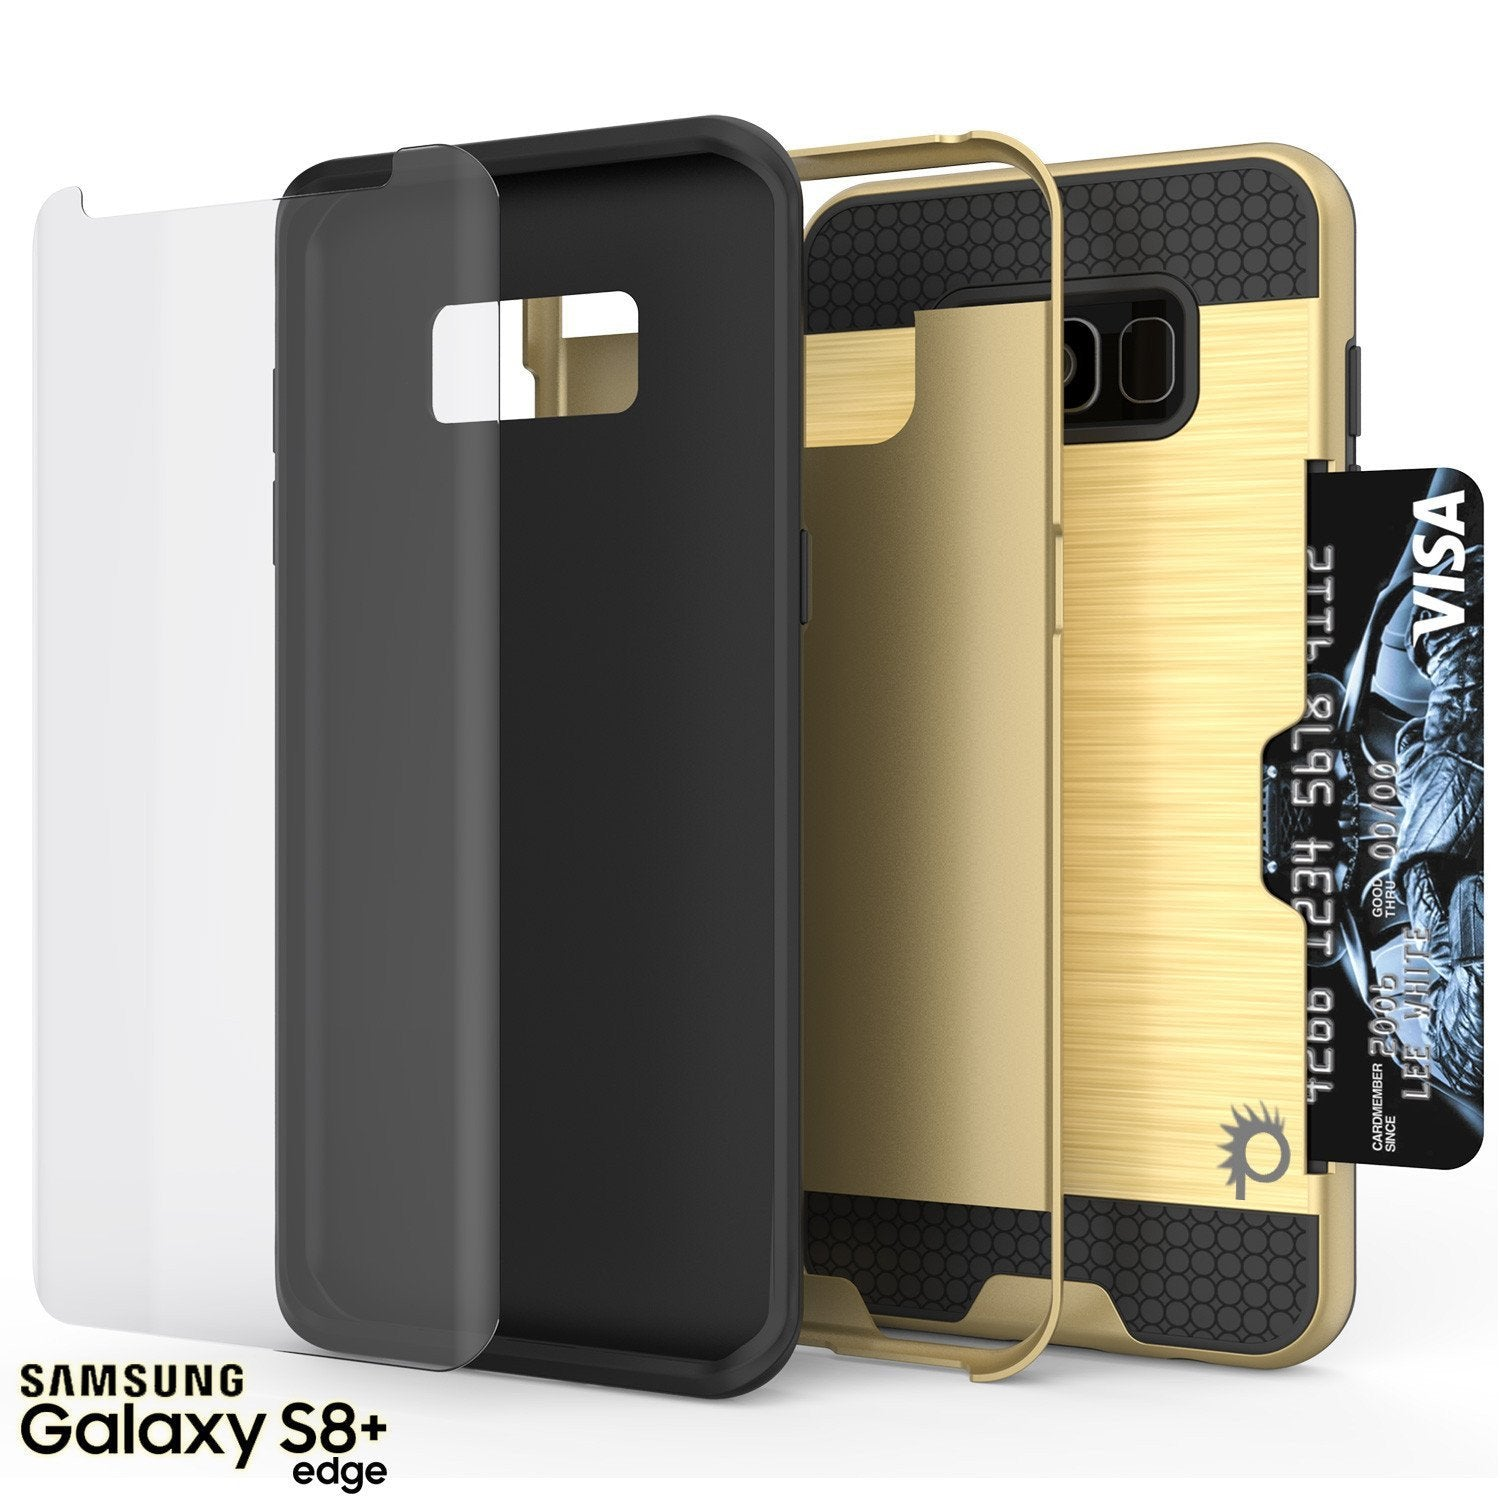 Galaxy S8 Plus Case, PUNKcase [SLOT Series] [Slim Fit] Dual-Layer Armor Cover w/Integrated Anti-Shock System, Credit Card Slot & PunkShield Screen Protector for Samsung Galaxy S8+ [Gold] - PunkCase NZ